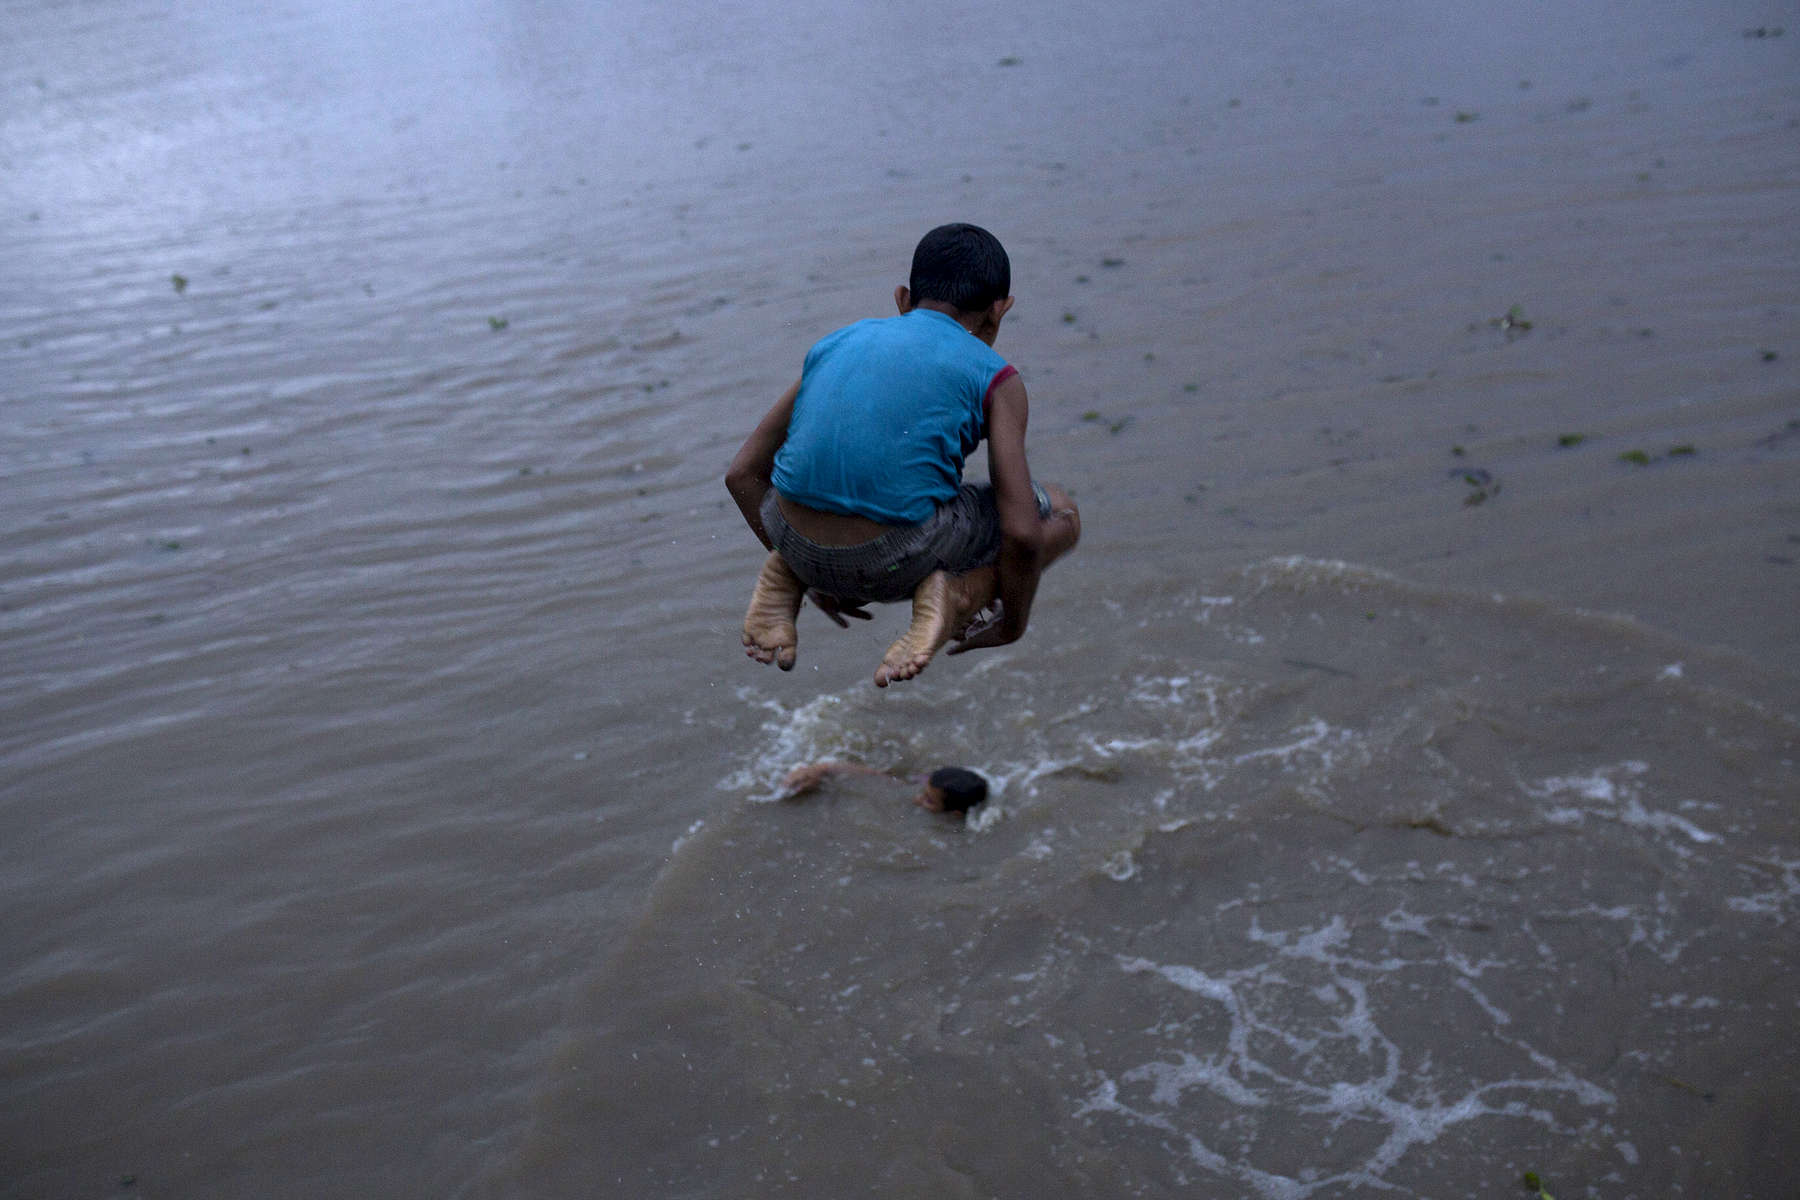 Davidson Ferreira Ferreira, 8, jumps into the Amazon River.